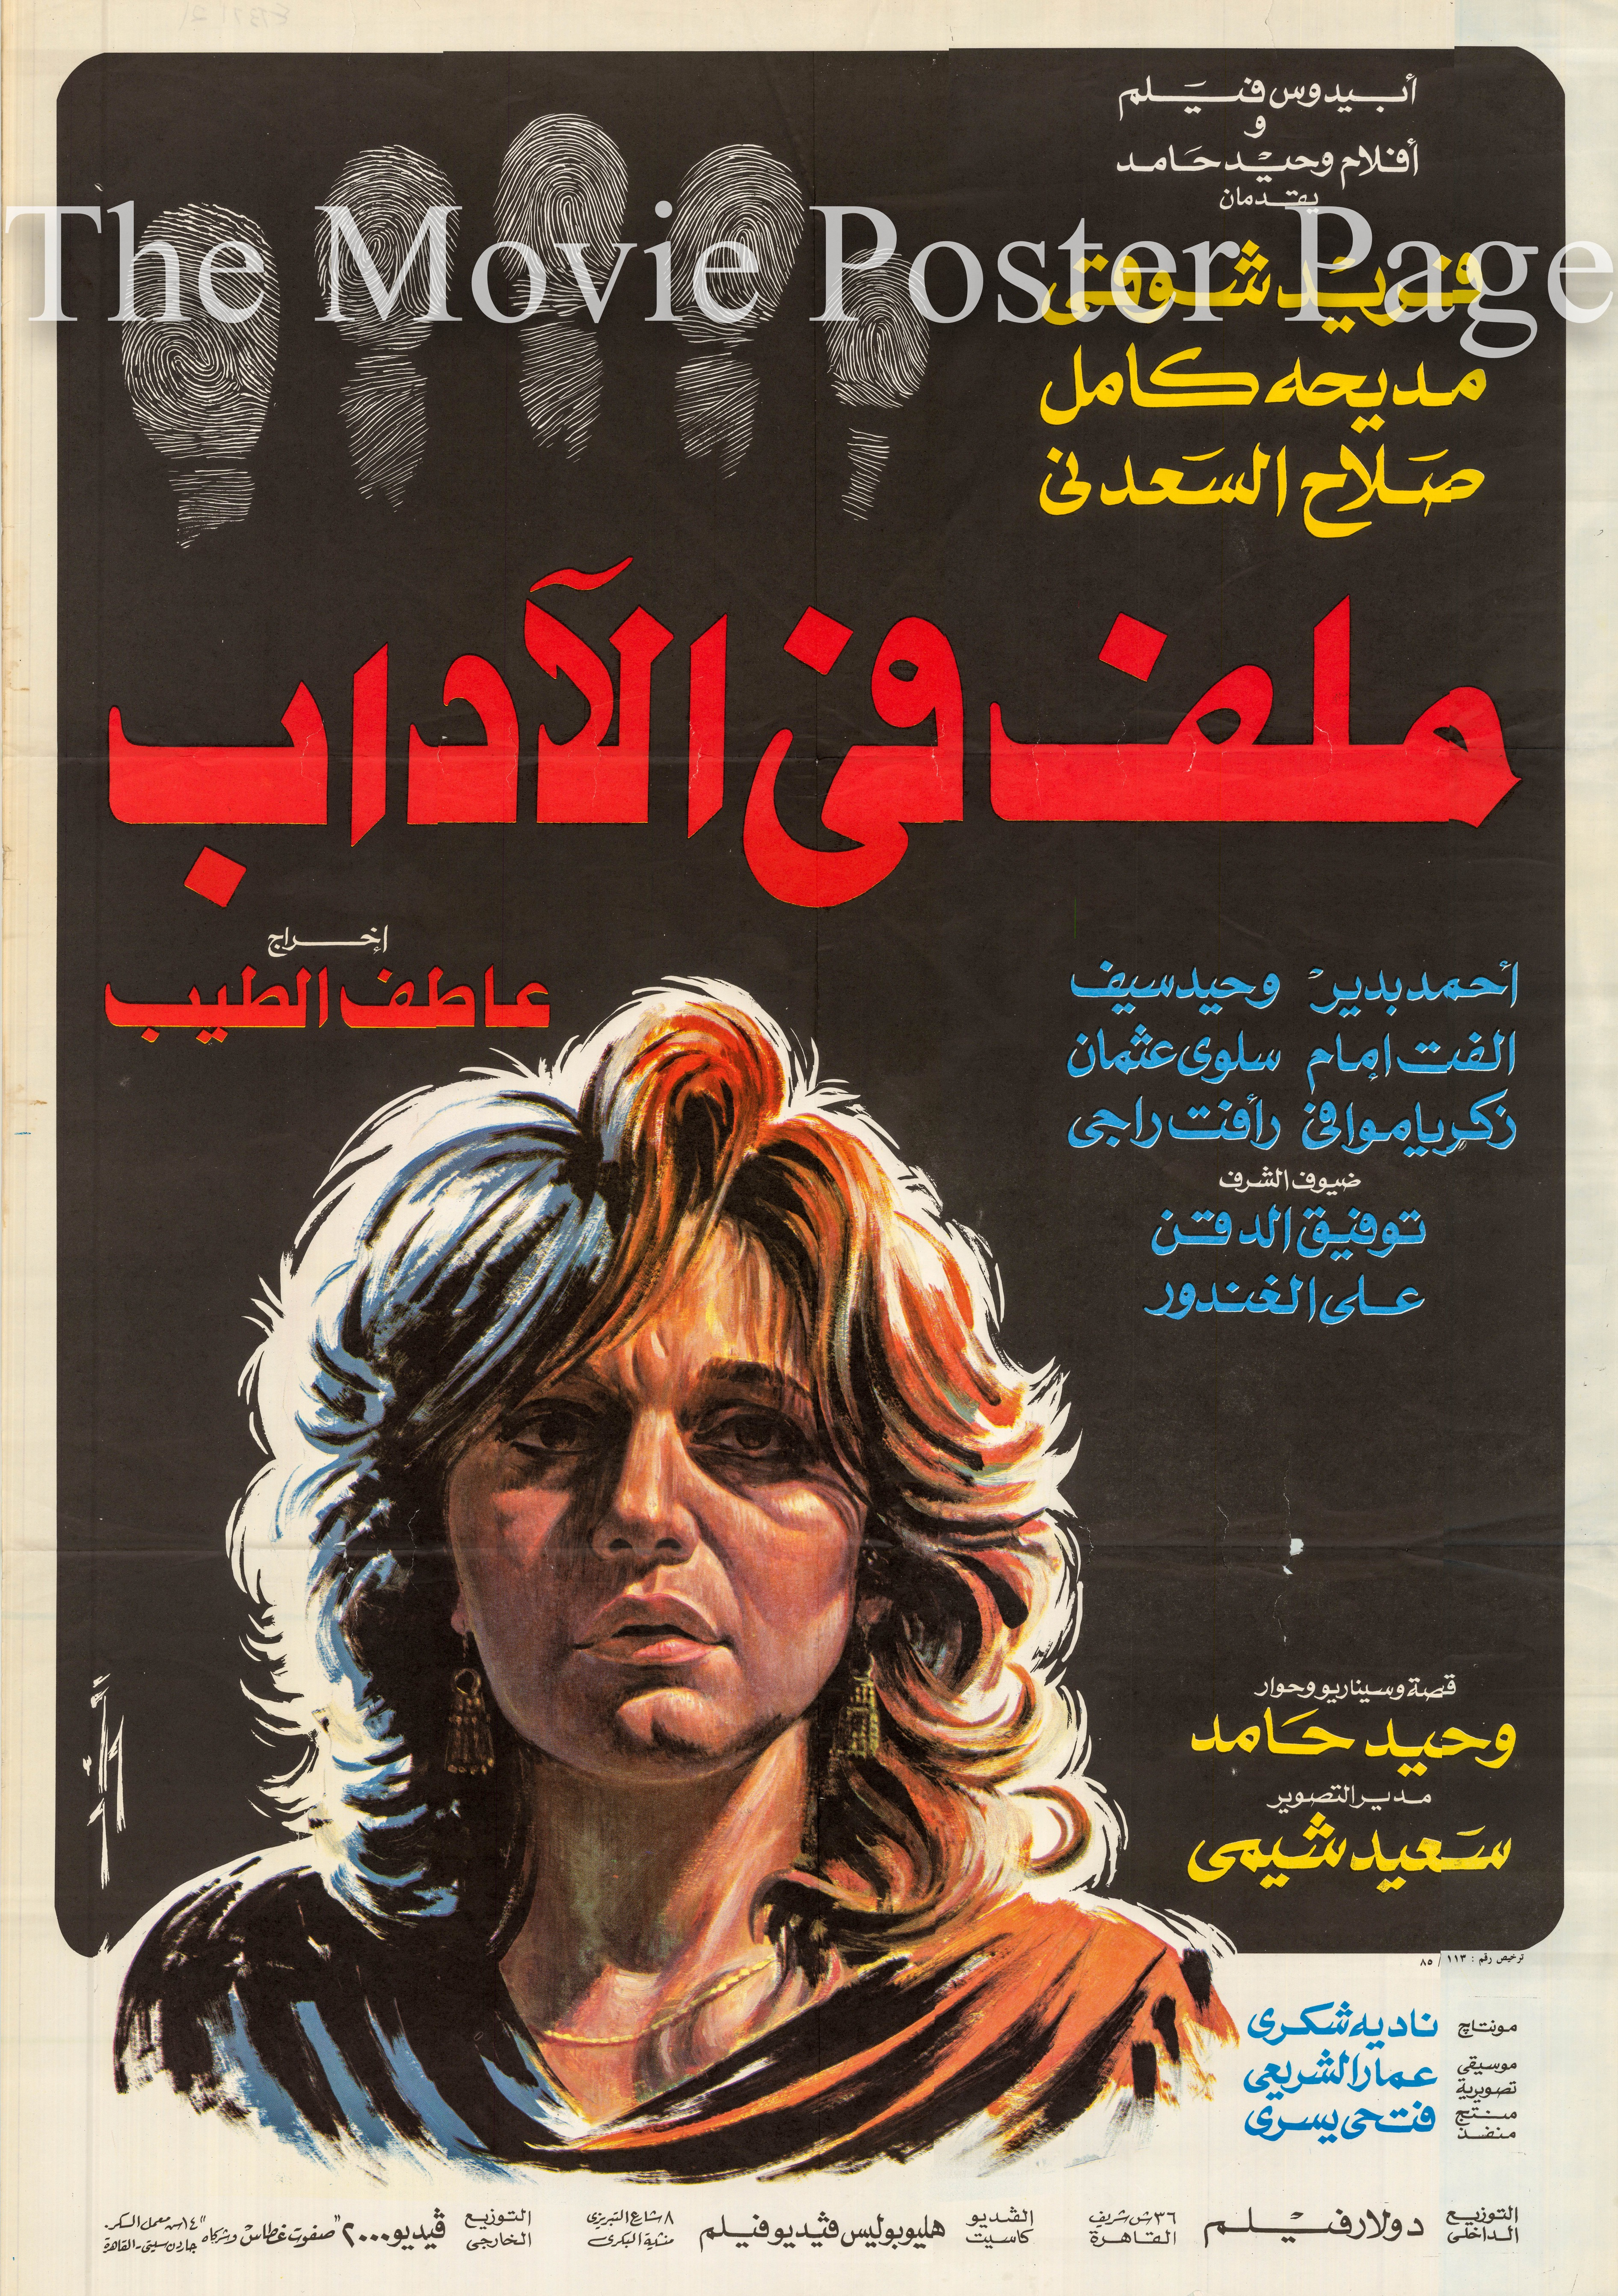 Pictured is an Egyptian promotional poster for the 1986 Atef E-Taib film <i>Malaf fil-Adab</i> starring Farid Shawqi as Rashad.